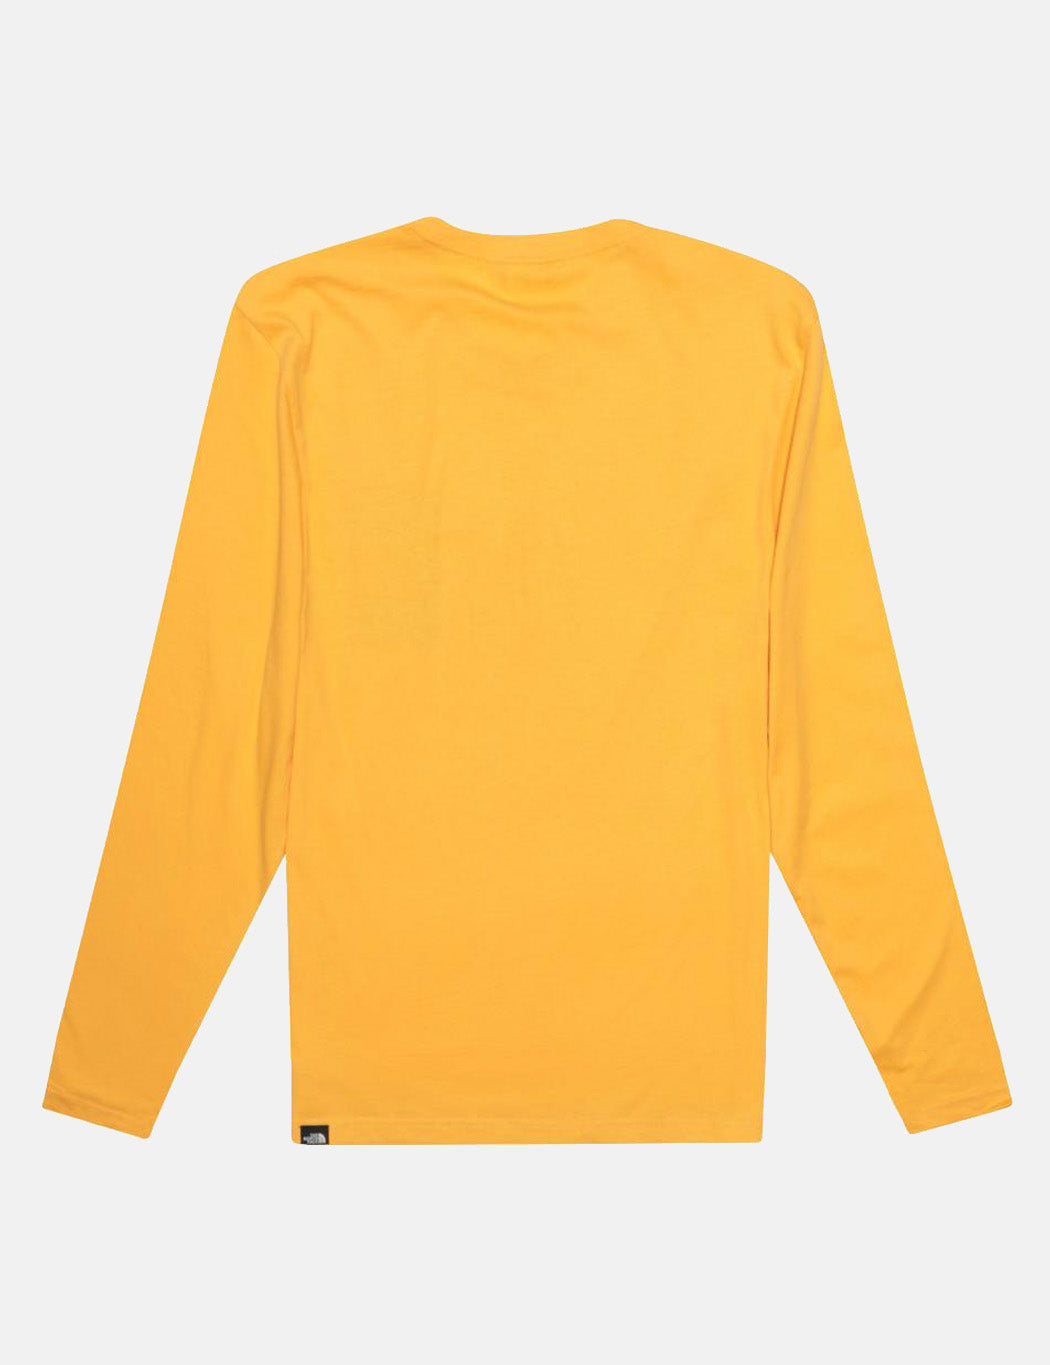 North Face Fine Long Sleeve T-Shirt - TNF Yellow